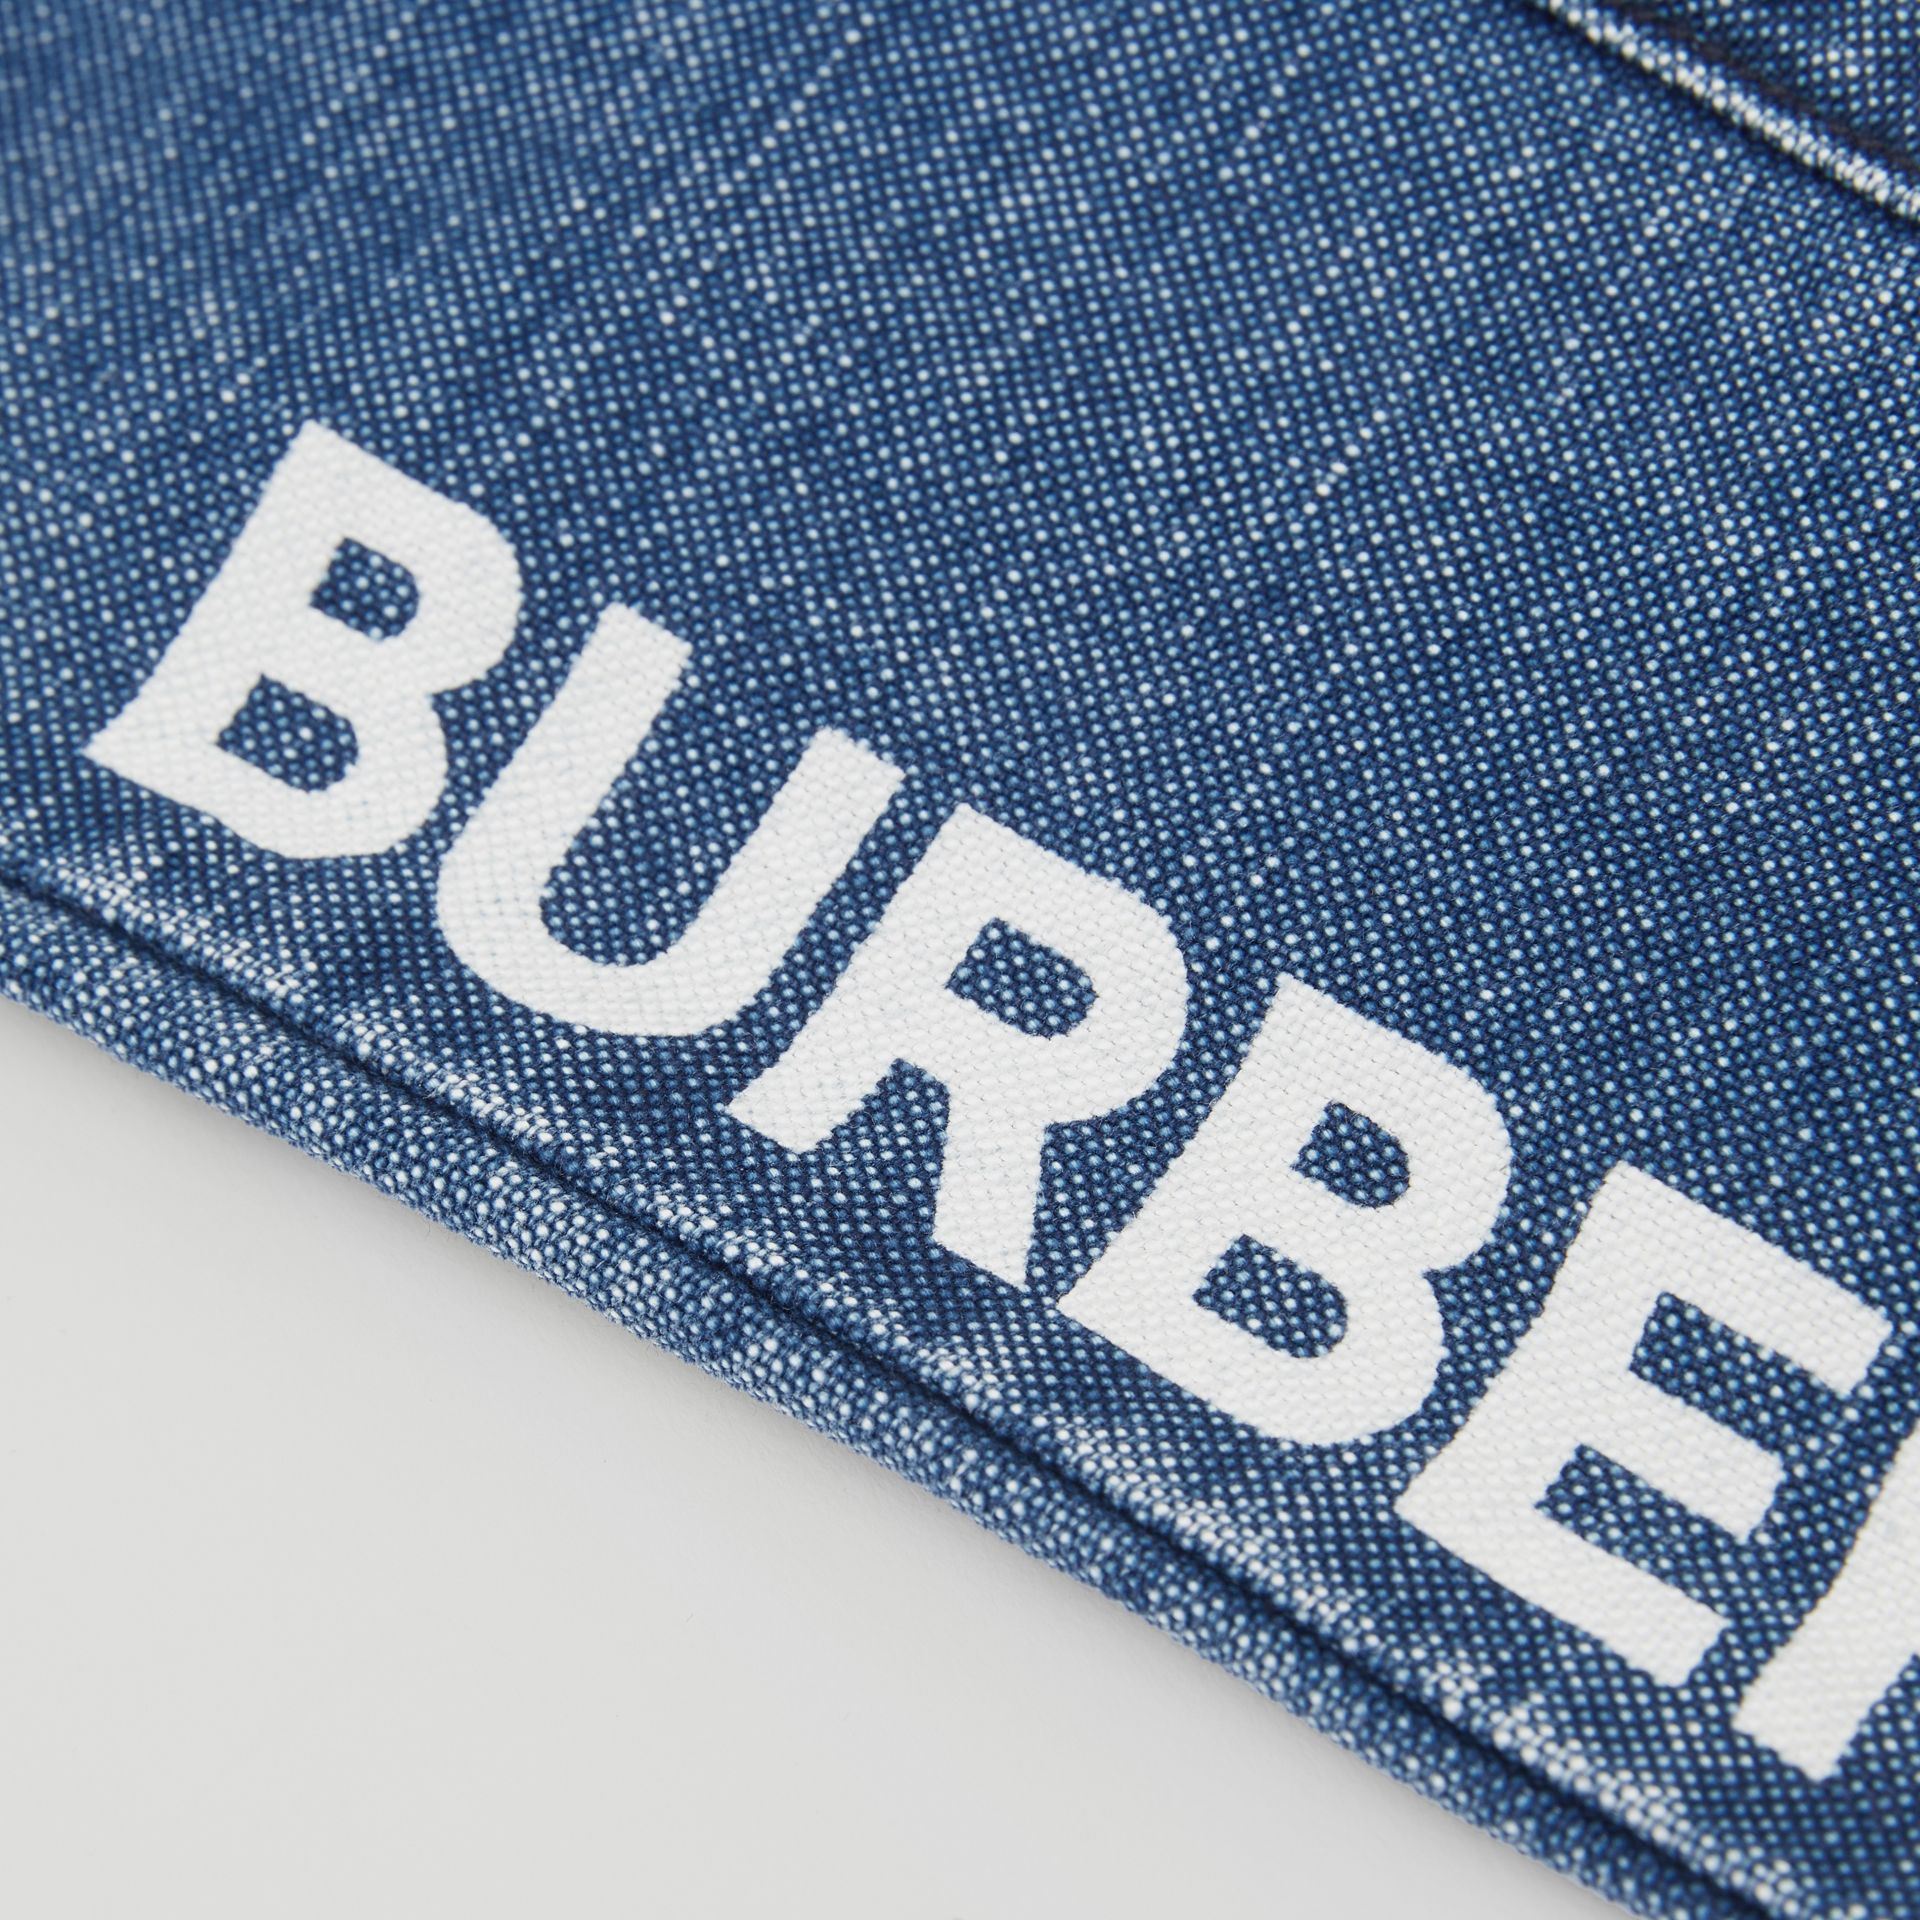 Logo Print Japanese Denim Jeans in Indigo - Children | Burberry - gallery image 1